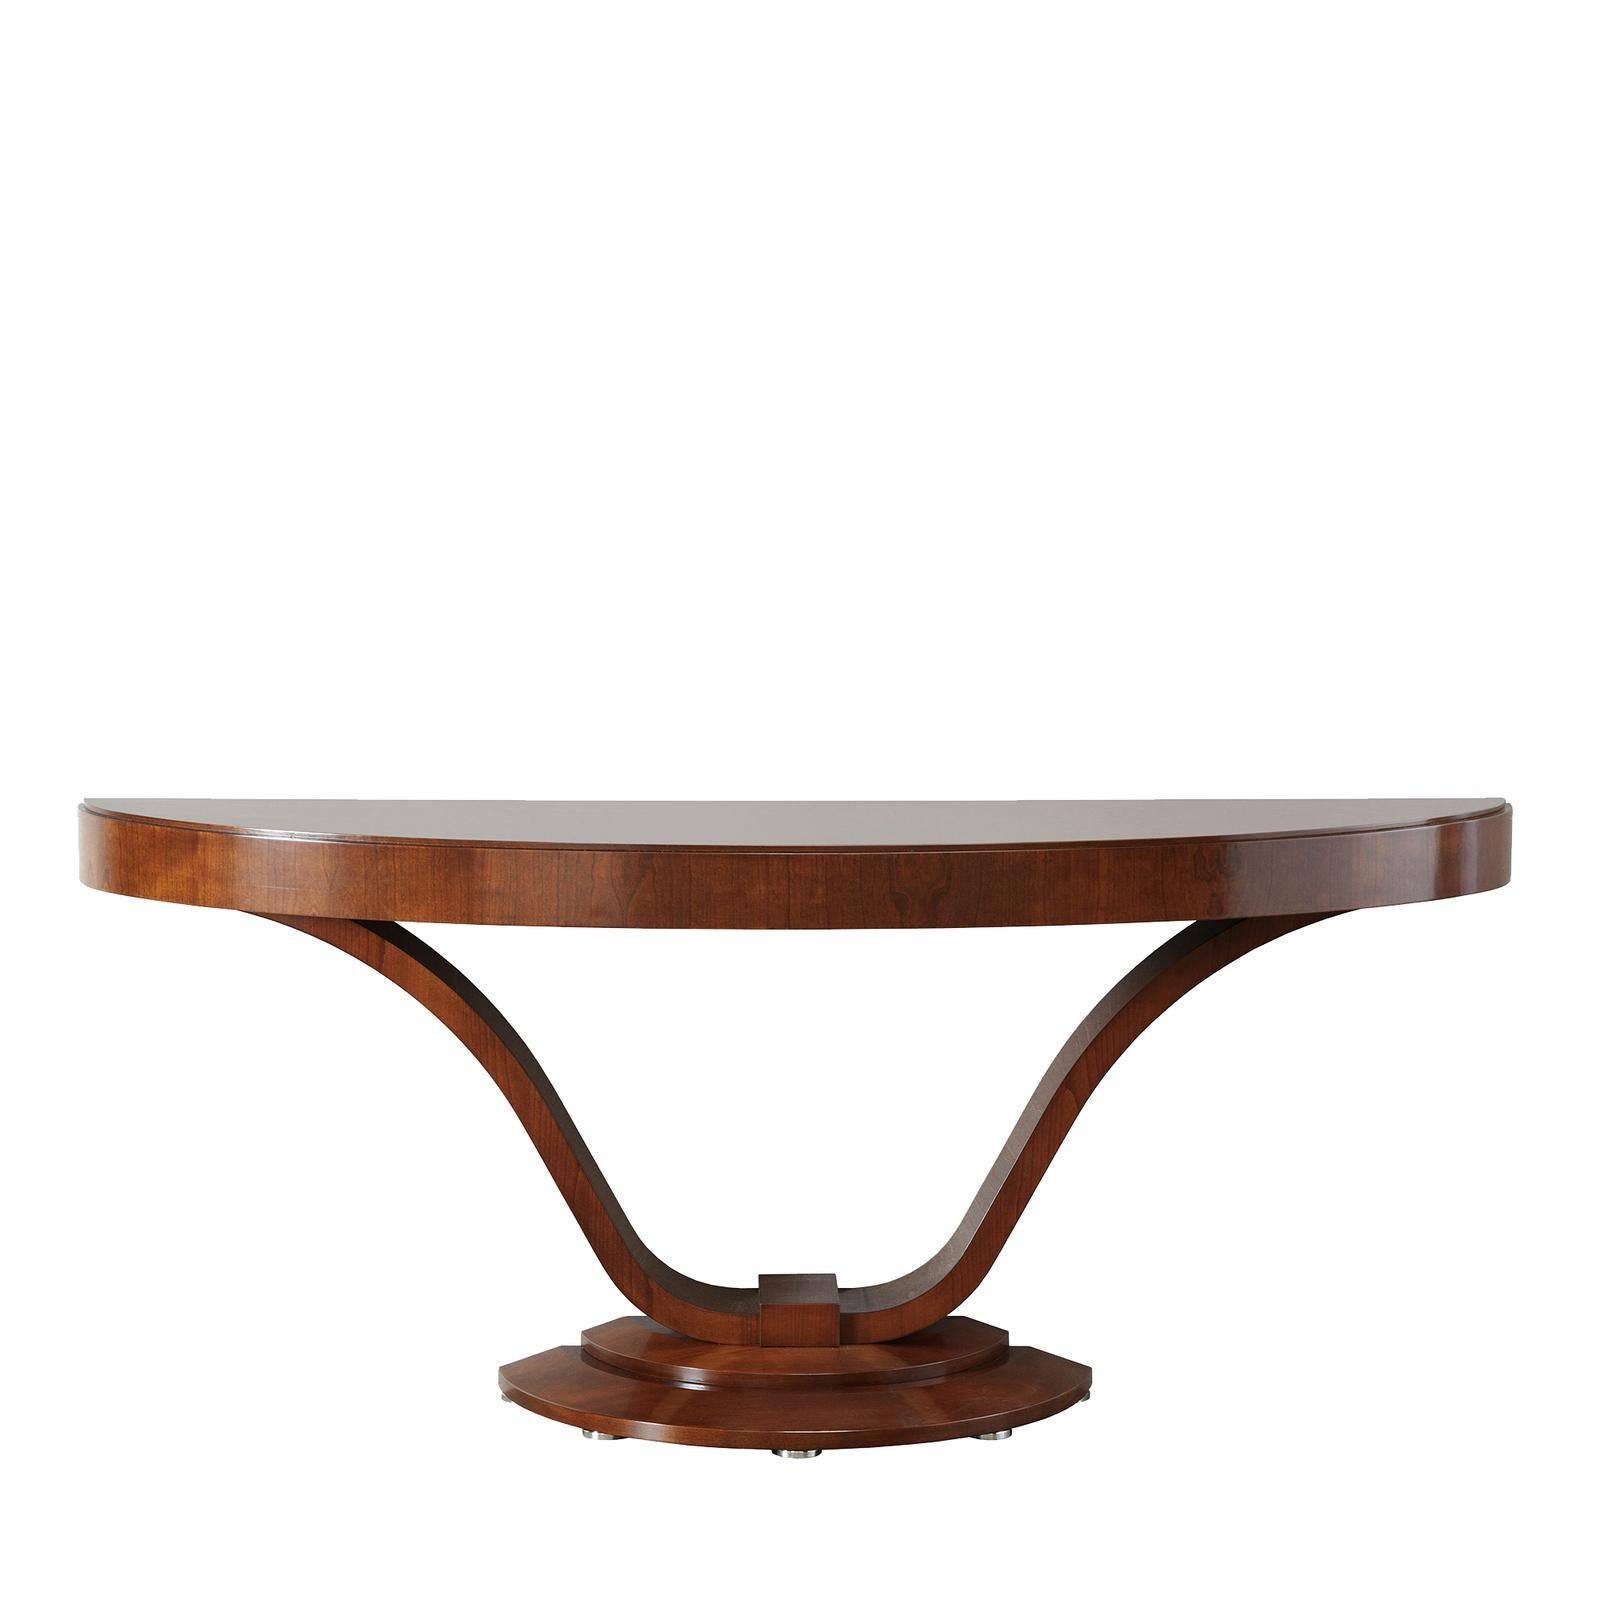 Victoria console for sale at 1stdibs